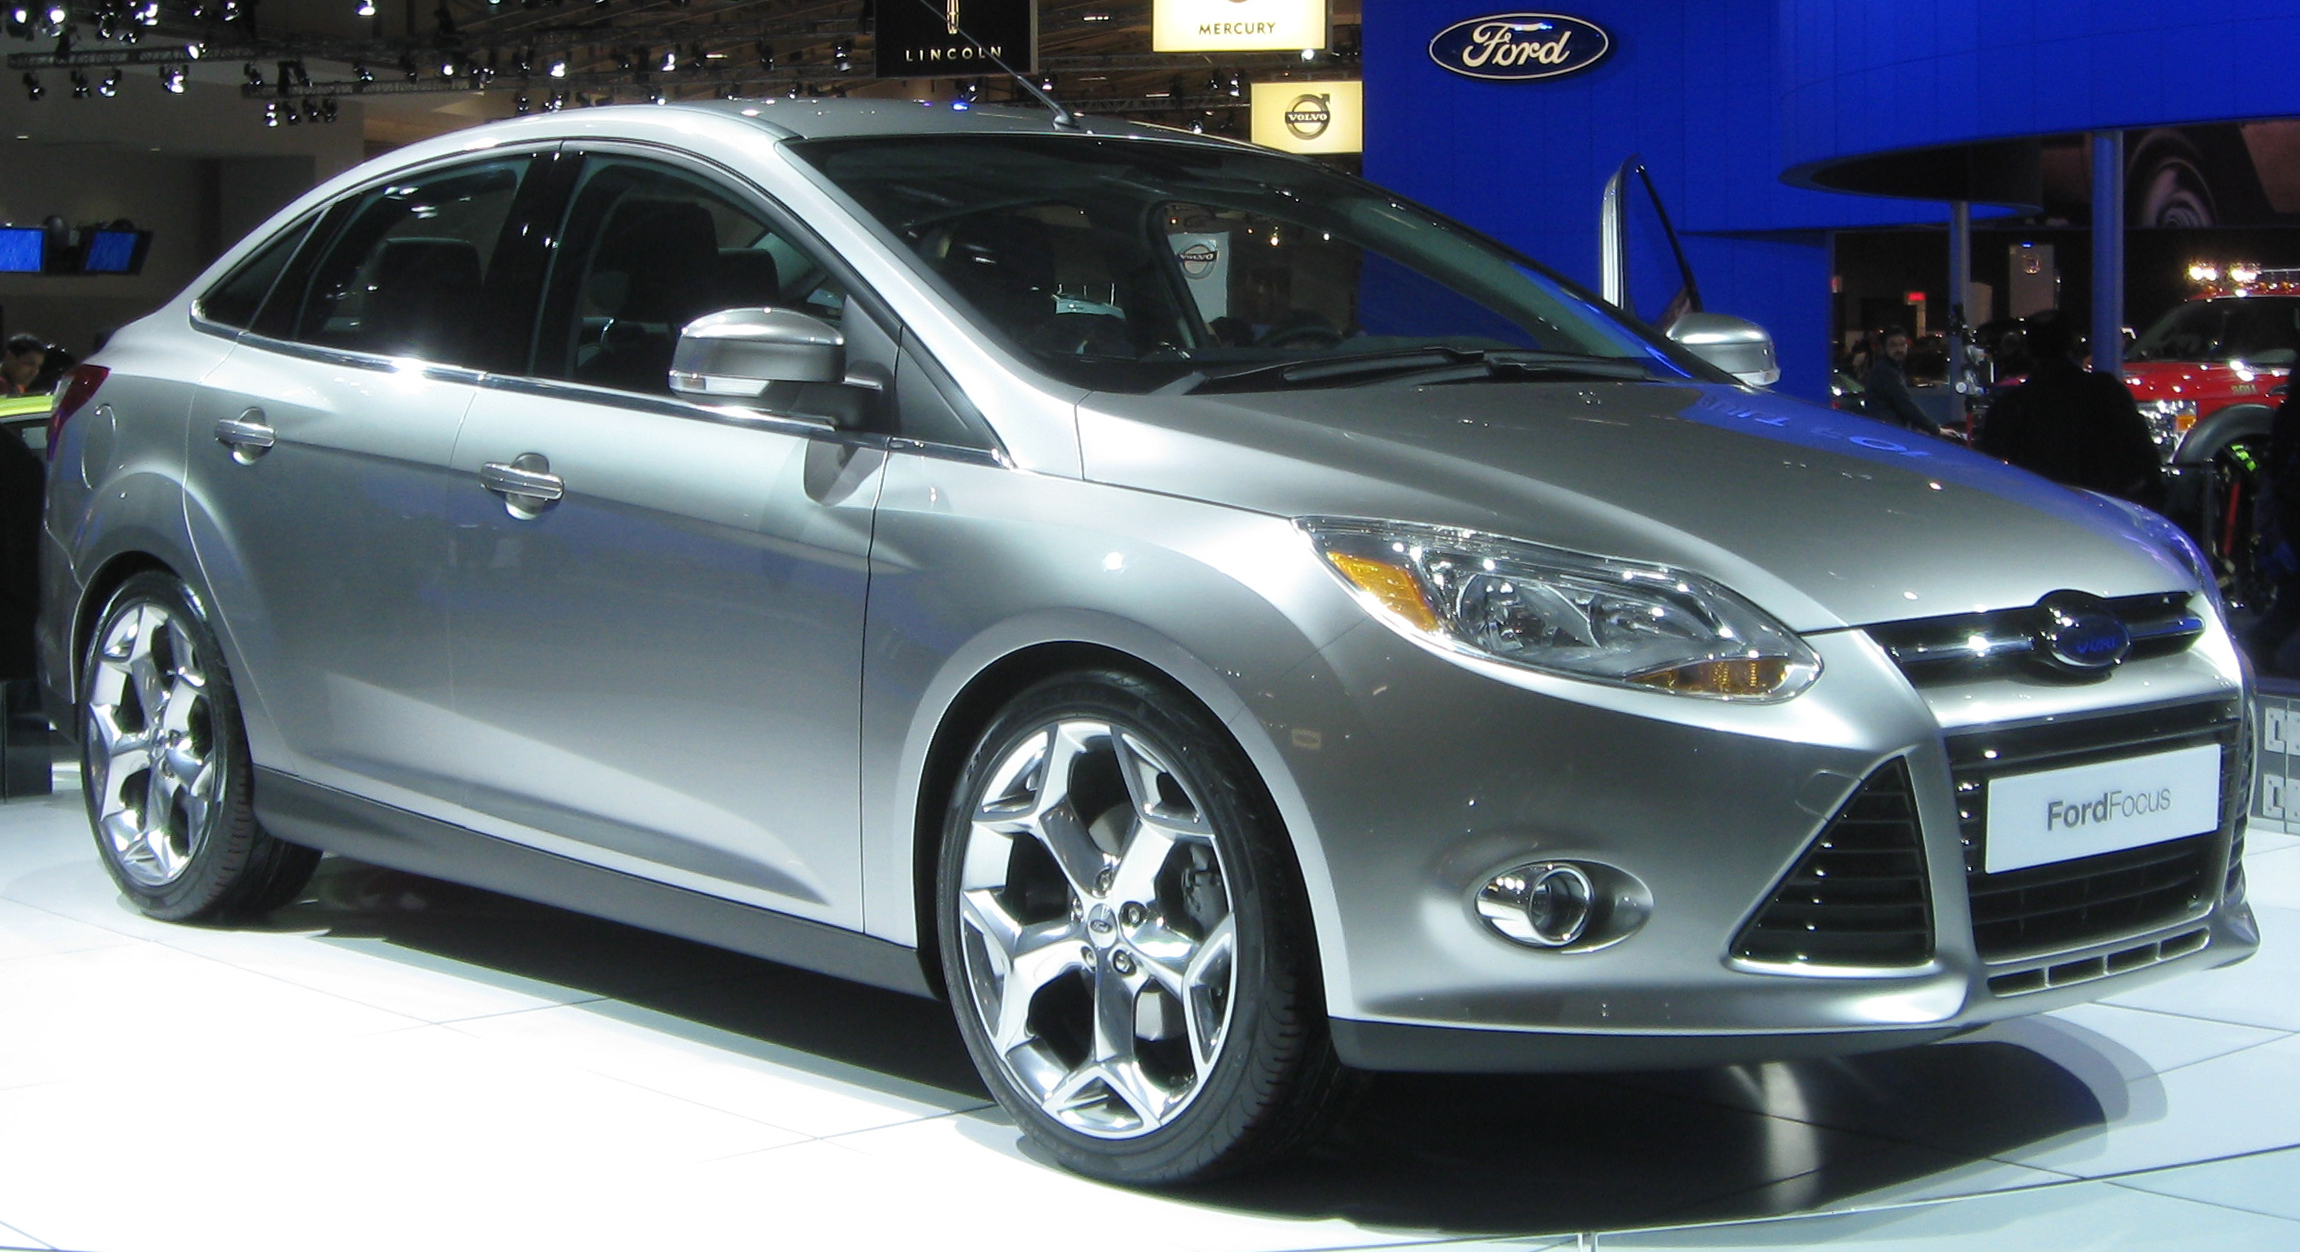 file 2012 ford focus sedan front 2010 wikimedia commons. Black Bedroom Furniture Sets. Home Design Ideas